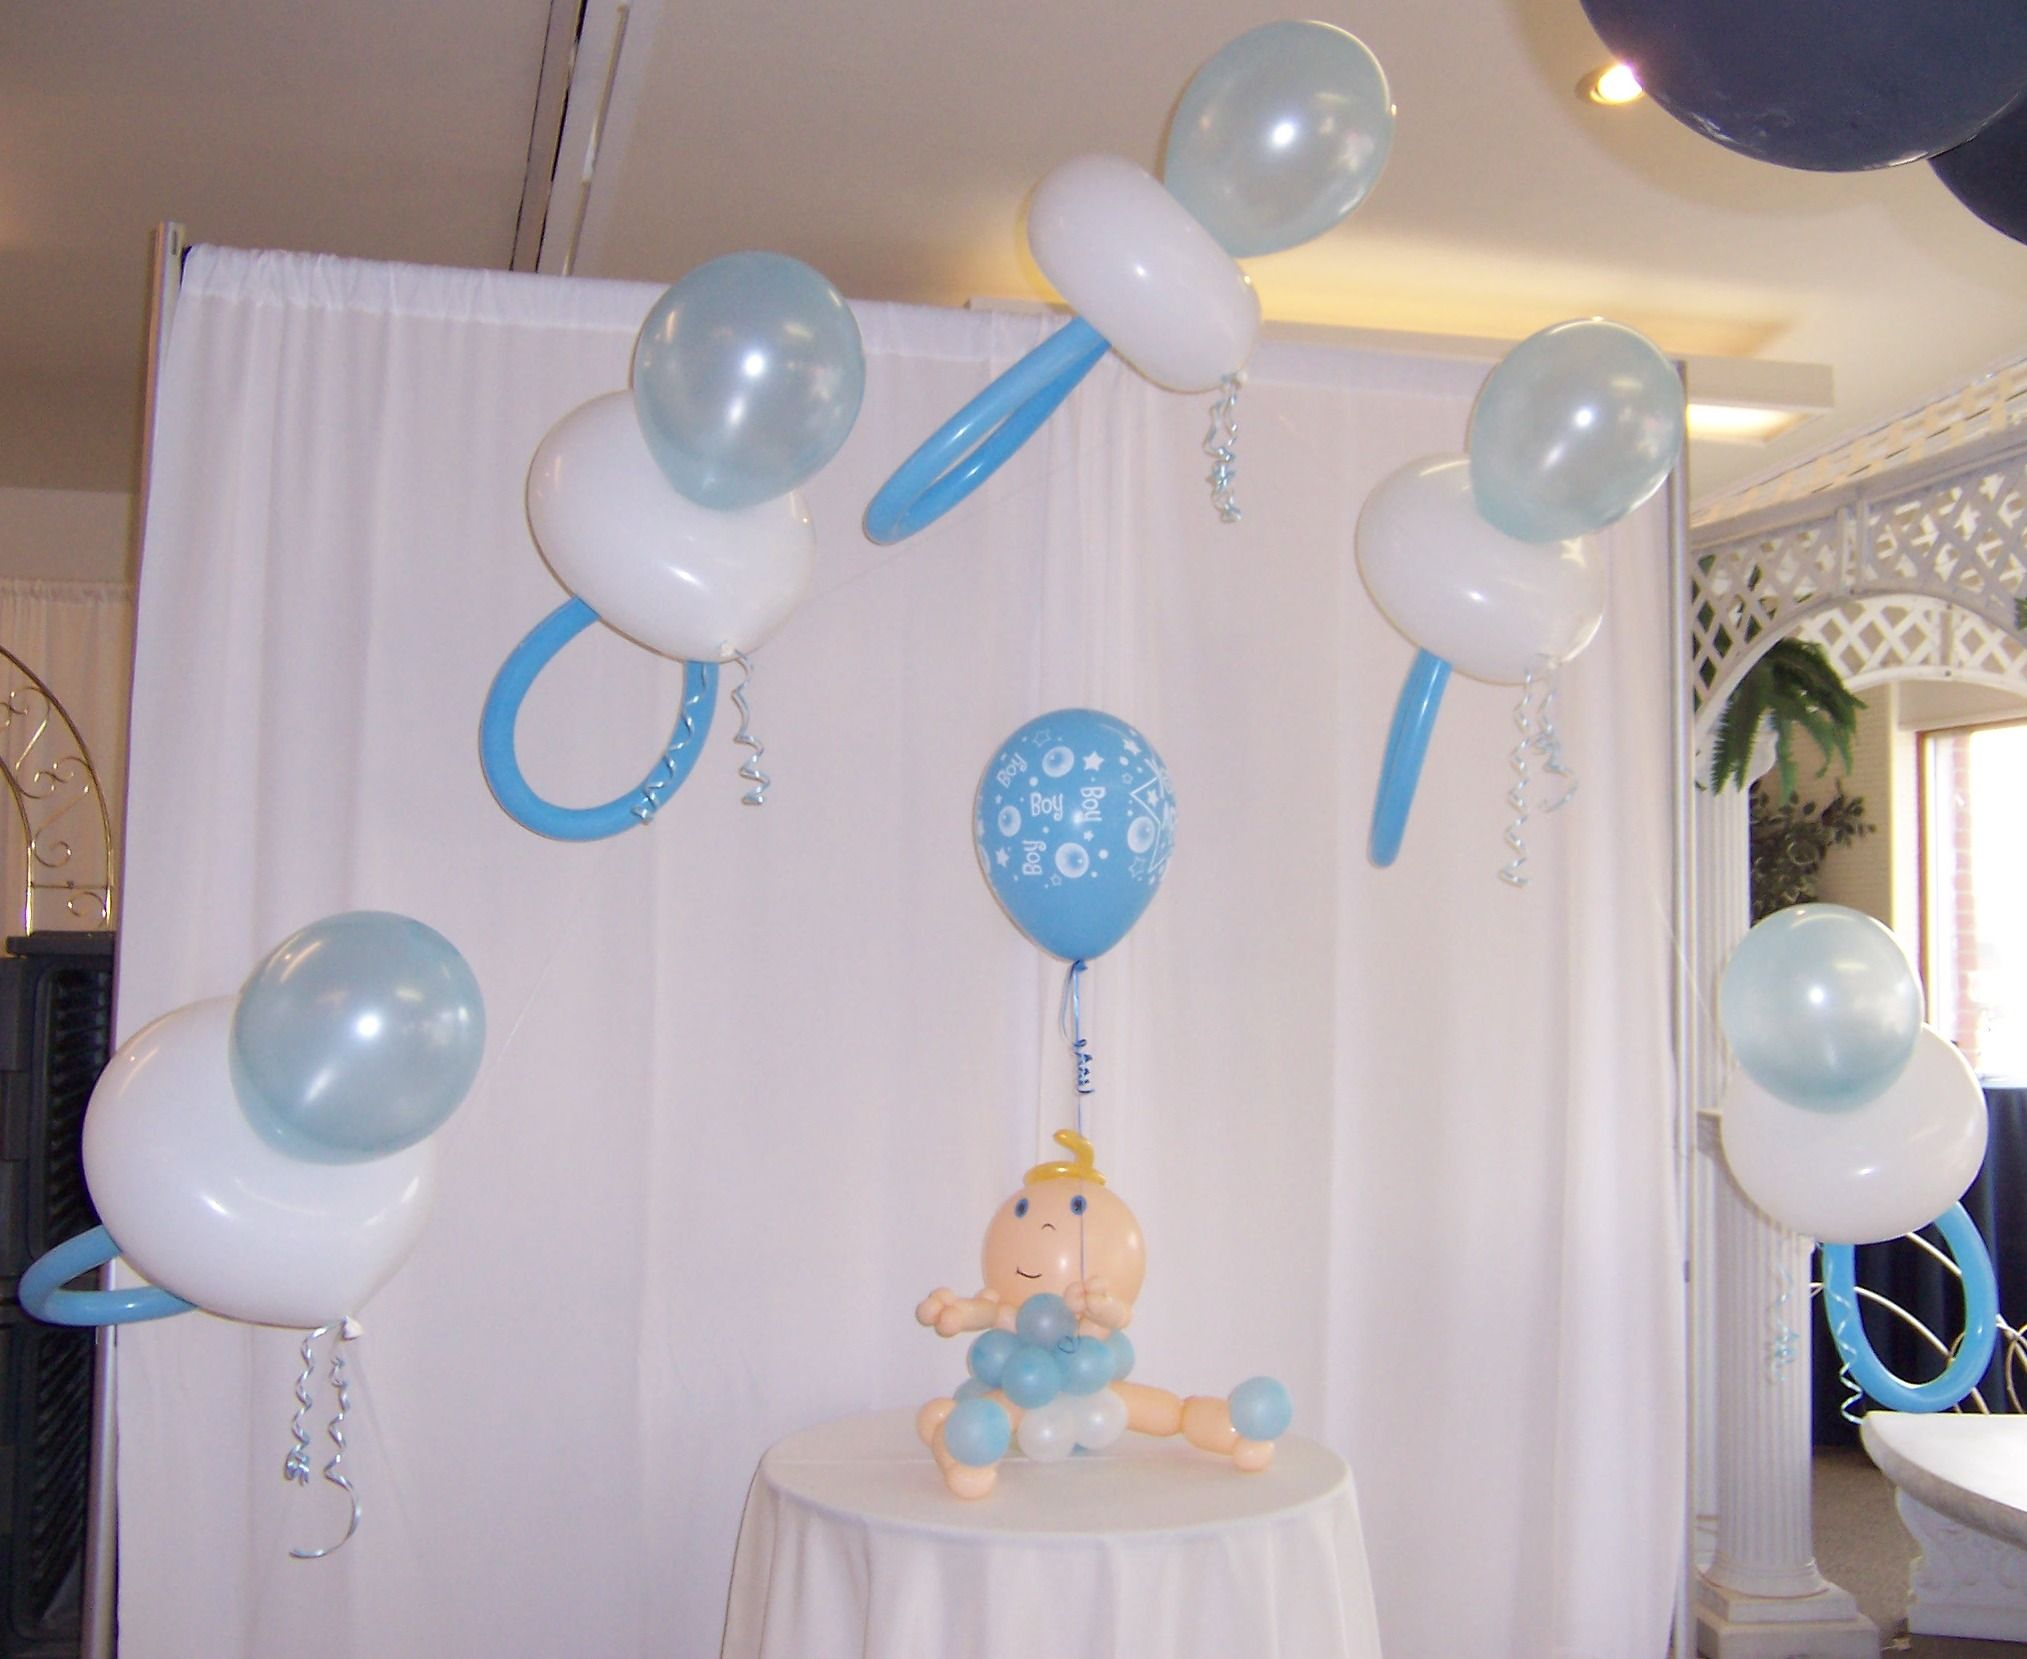 Stupendous 1000 Images About Baby Shower On Pinterest Baby Shower Balloons Hairstyles For Men Maxibearus